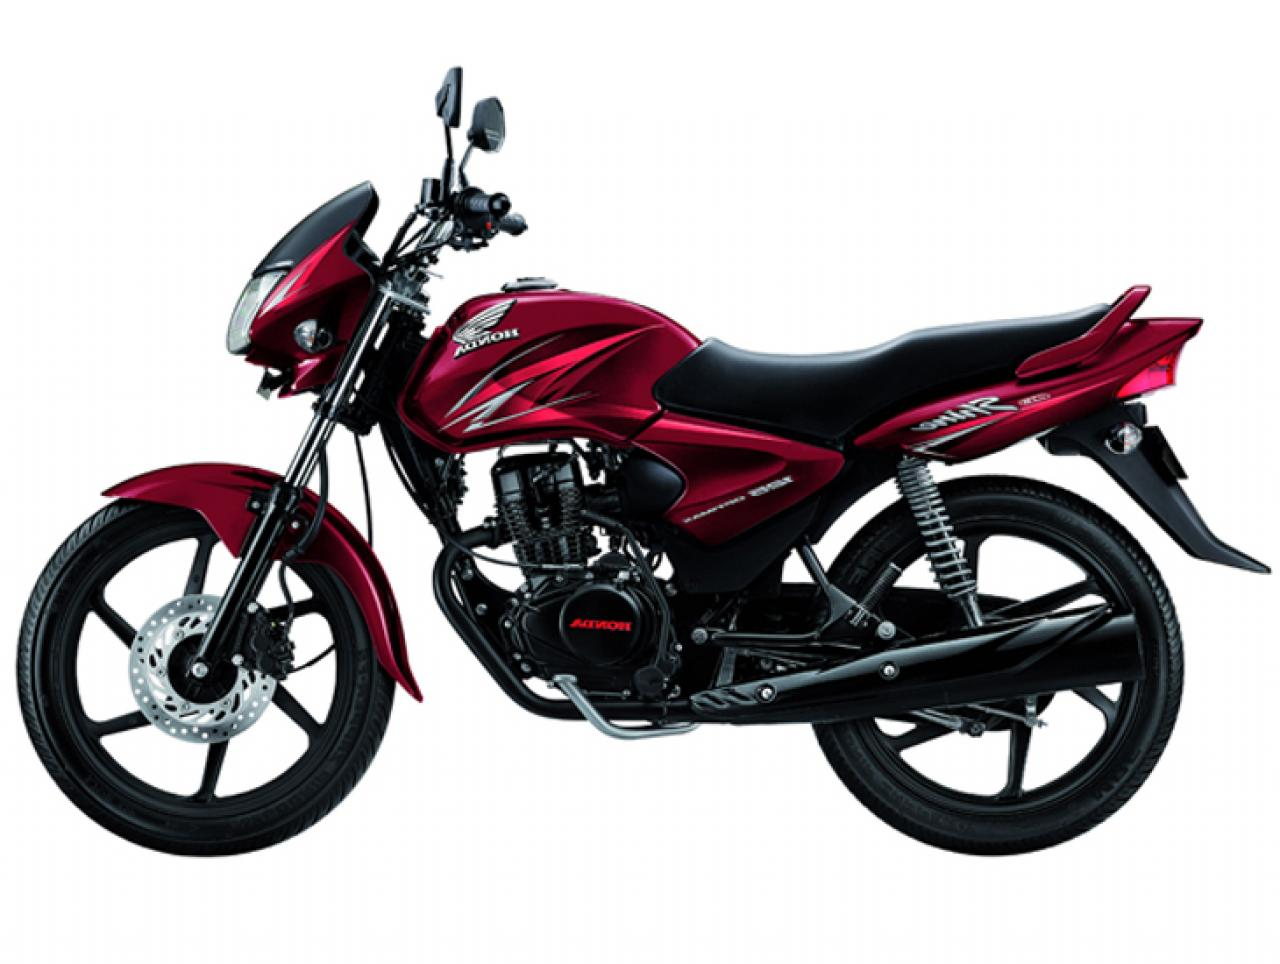 Honda shine 125 red